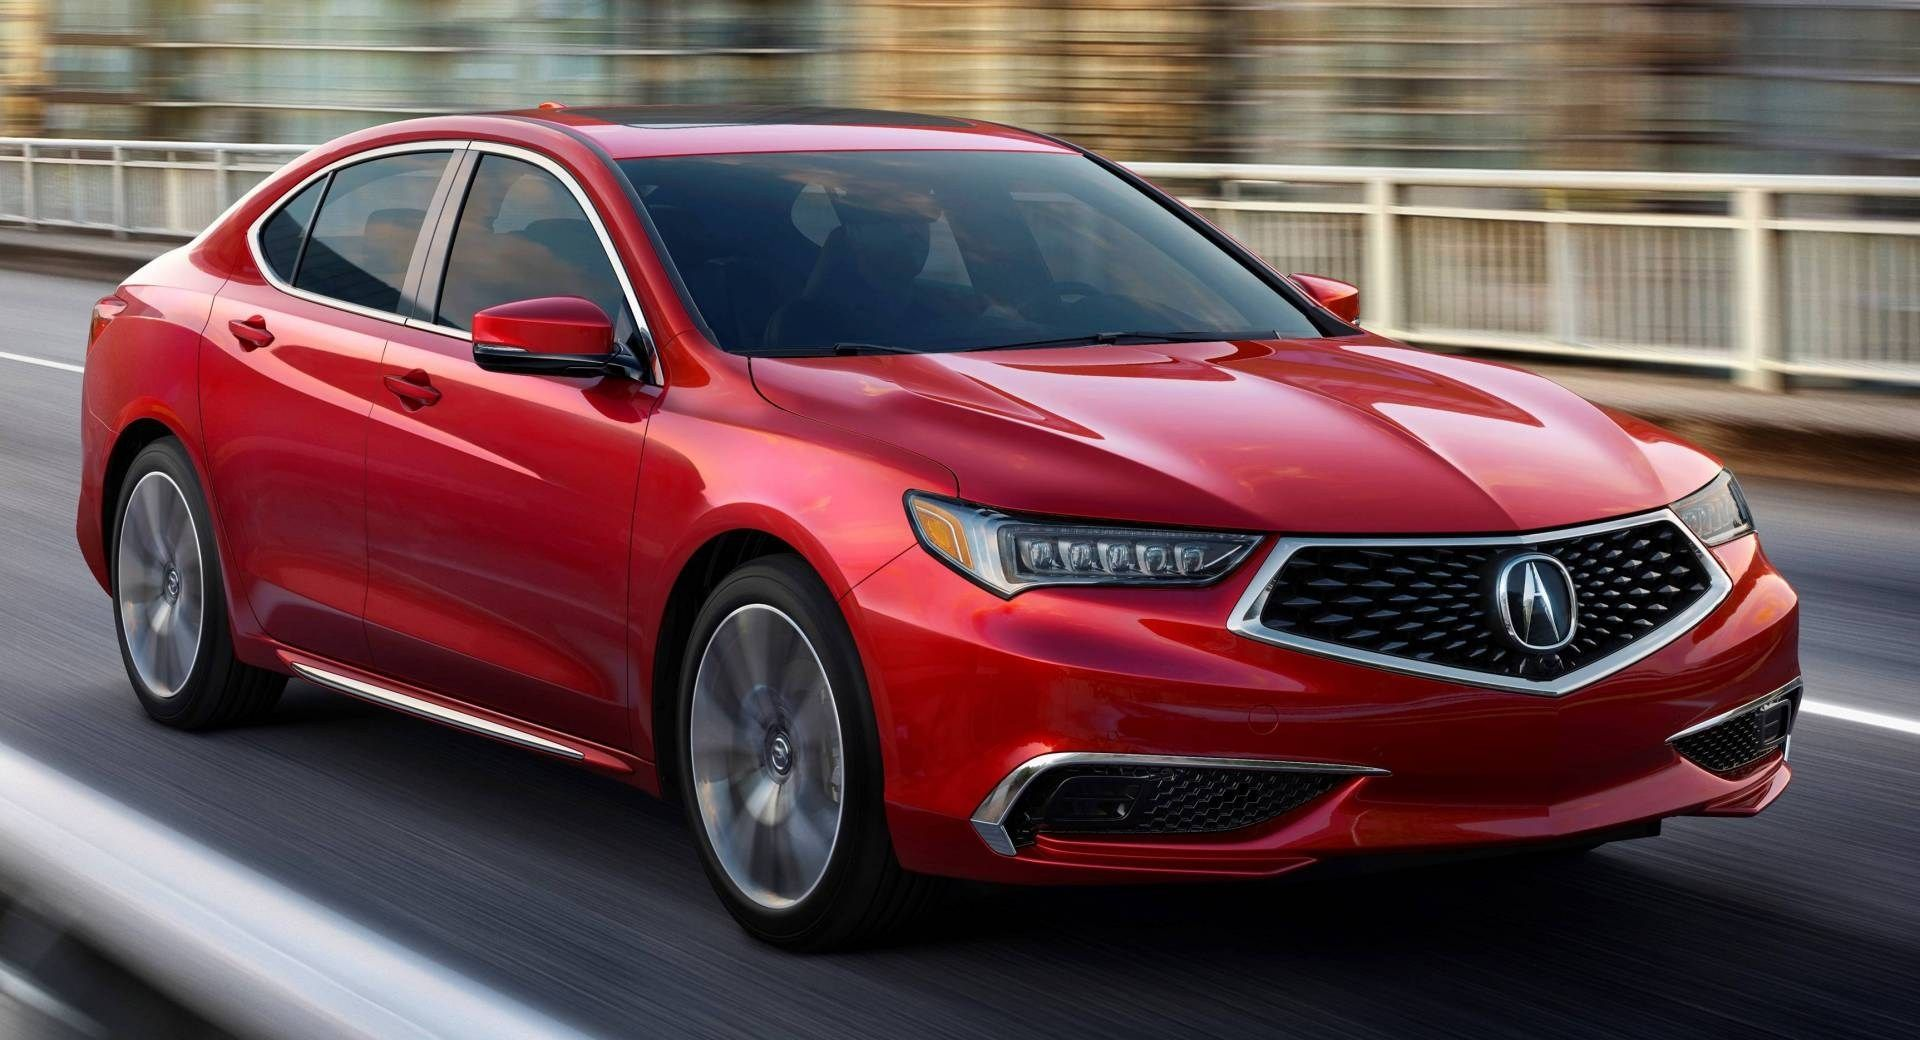 When Will Honda Tlx 2020 Look Like Acura Tlx Honda Car Models Acura Ilx